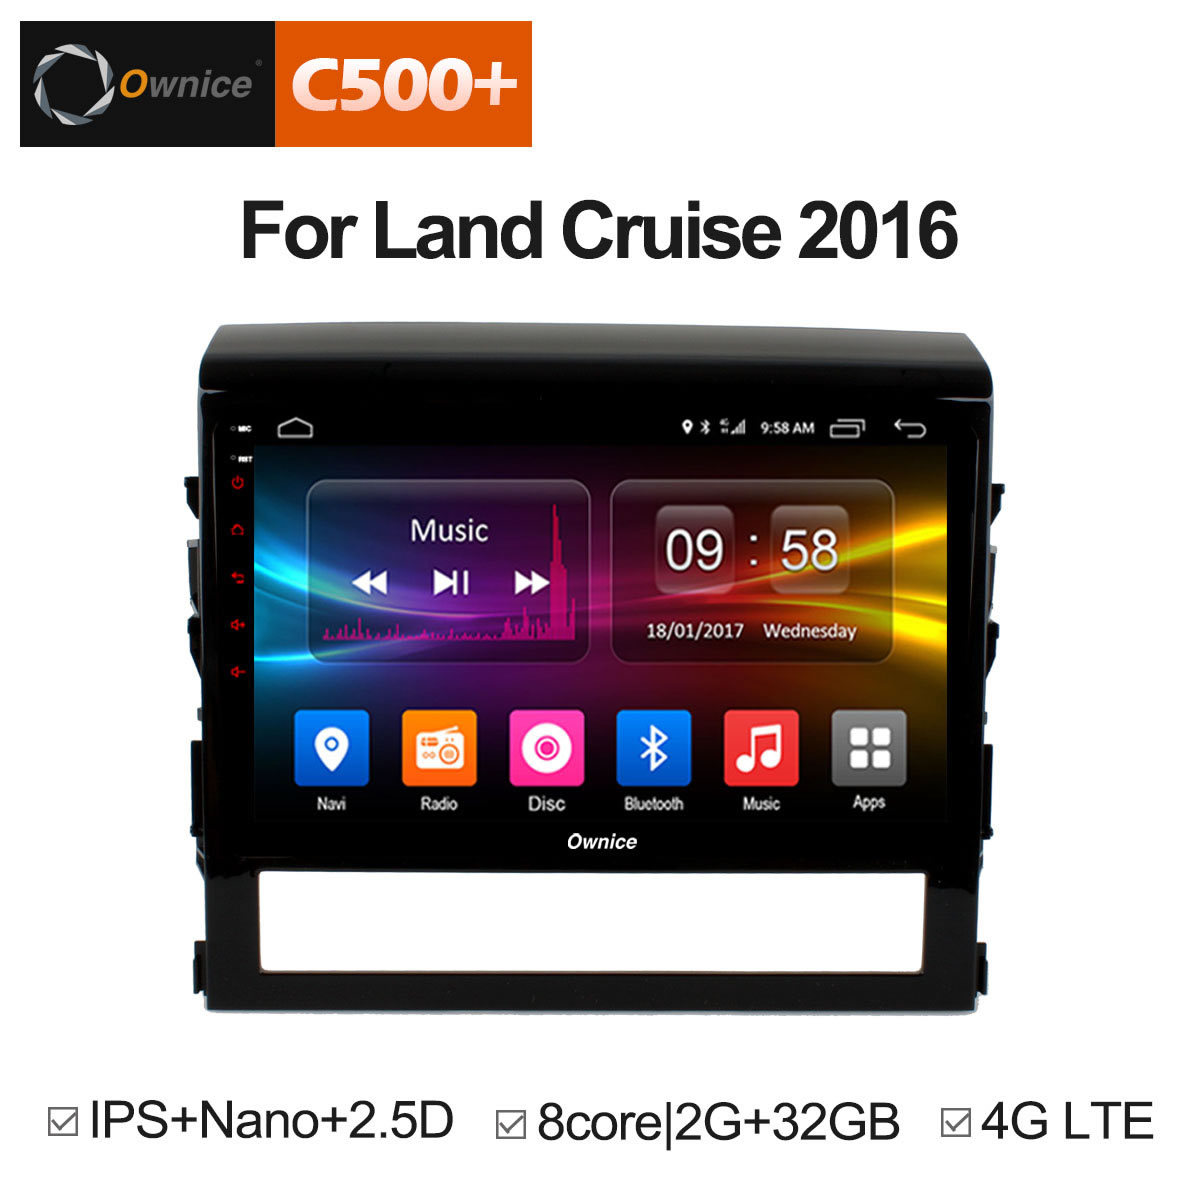 Ownice C500+ G10 android 8.1 octa core car dvd player for Toyota land cruiser 200 LC200 2016 gps radio 4G LTE IPS 2.5D Nano dab+